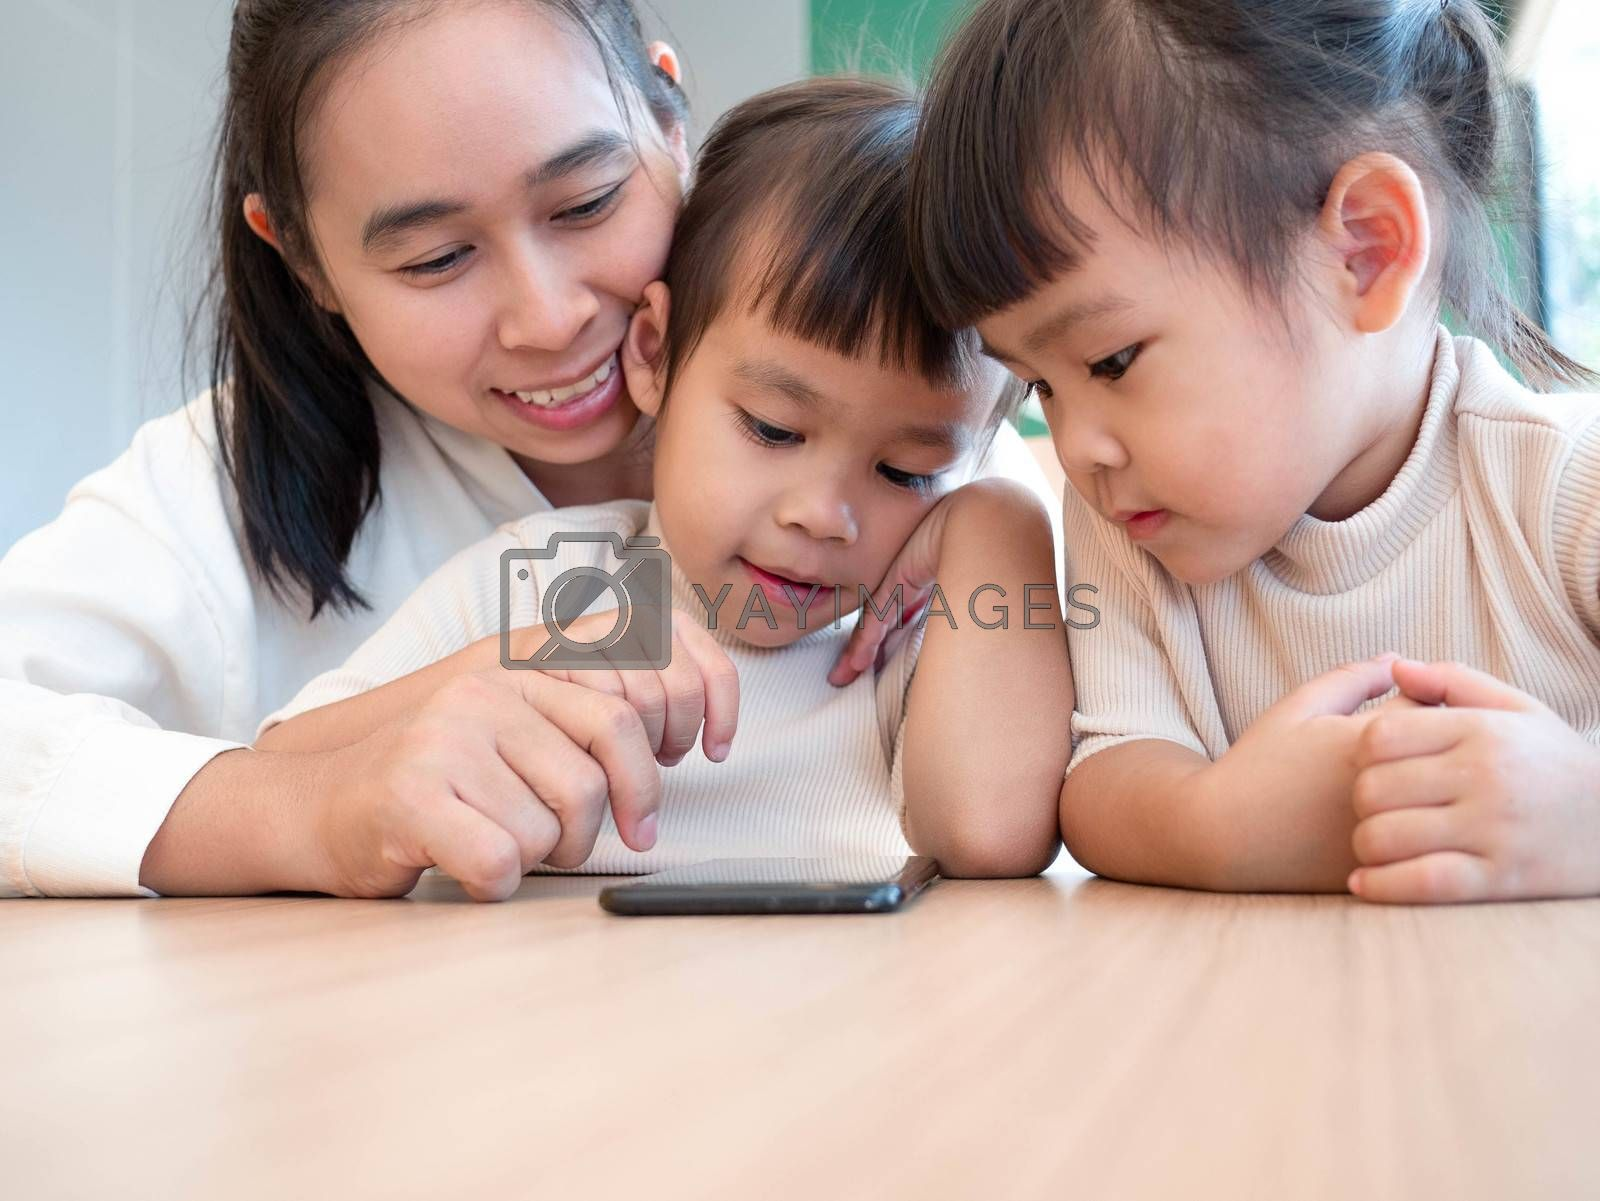 Asian beautiful young mother and her little daughters are enjoying playing games or entertaining using mobile apps on phone at home.